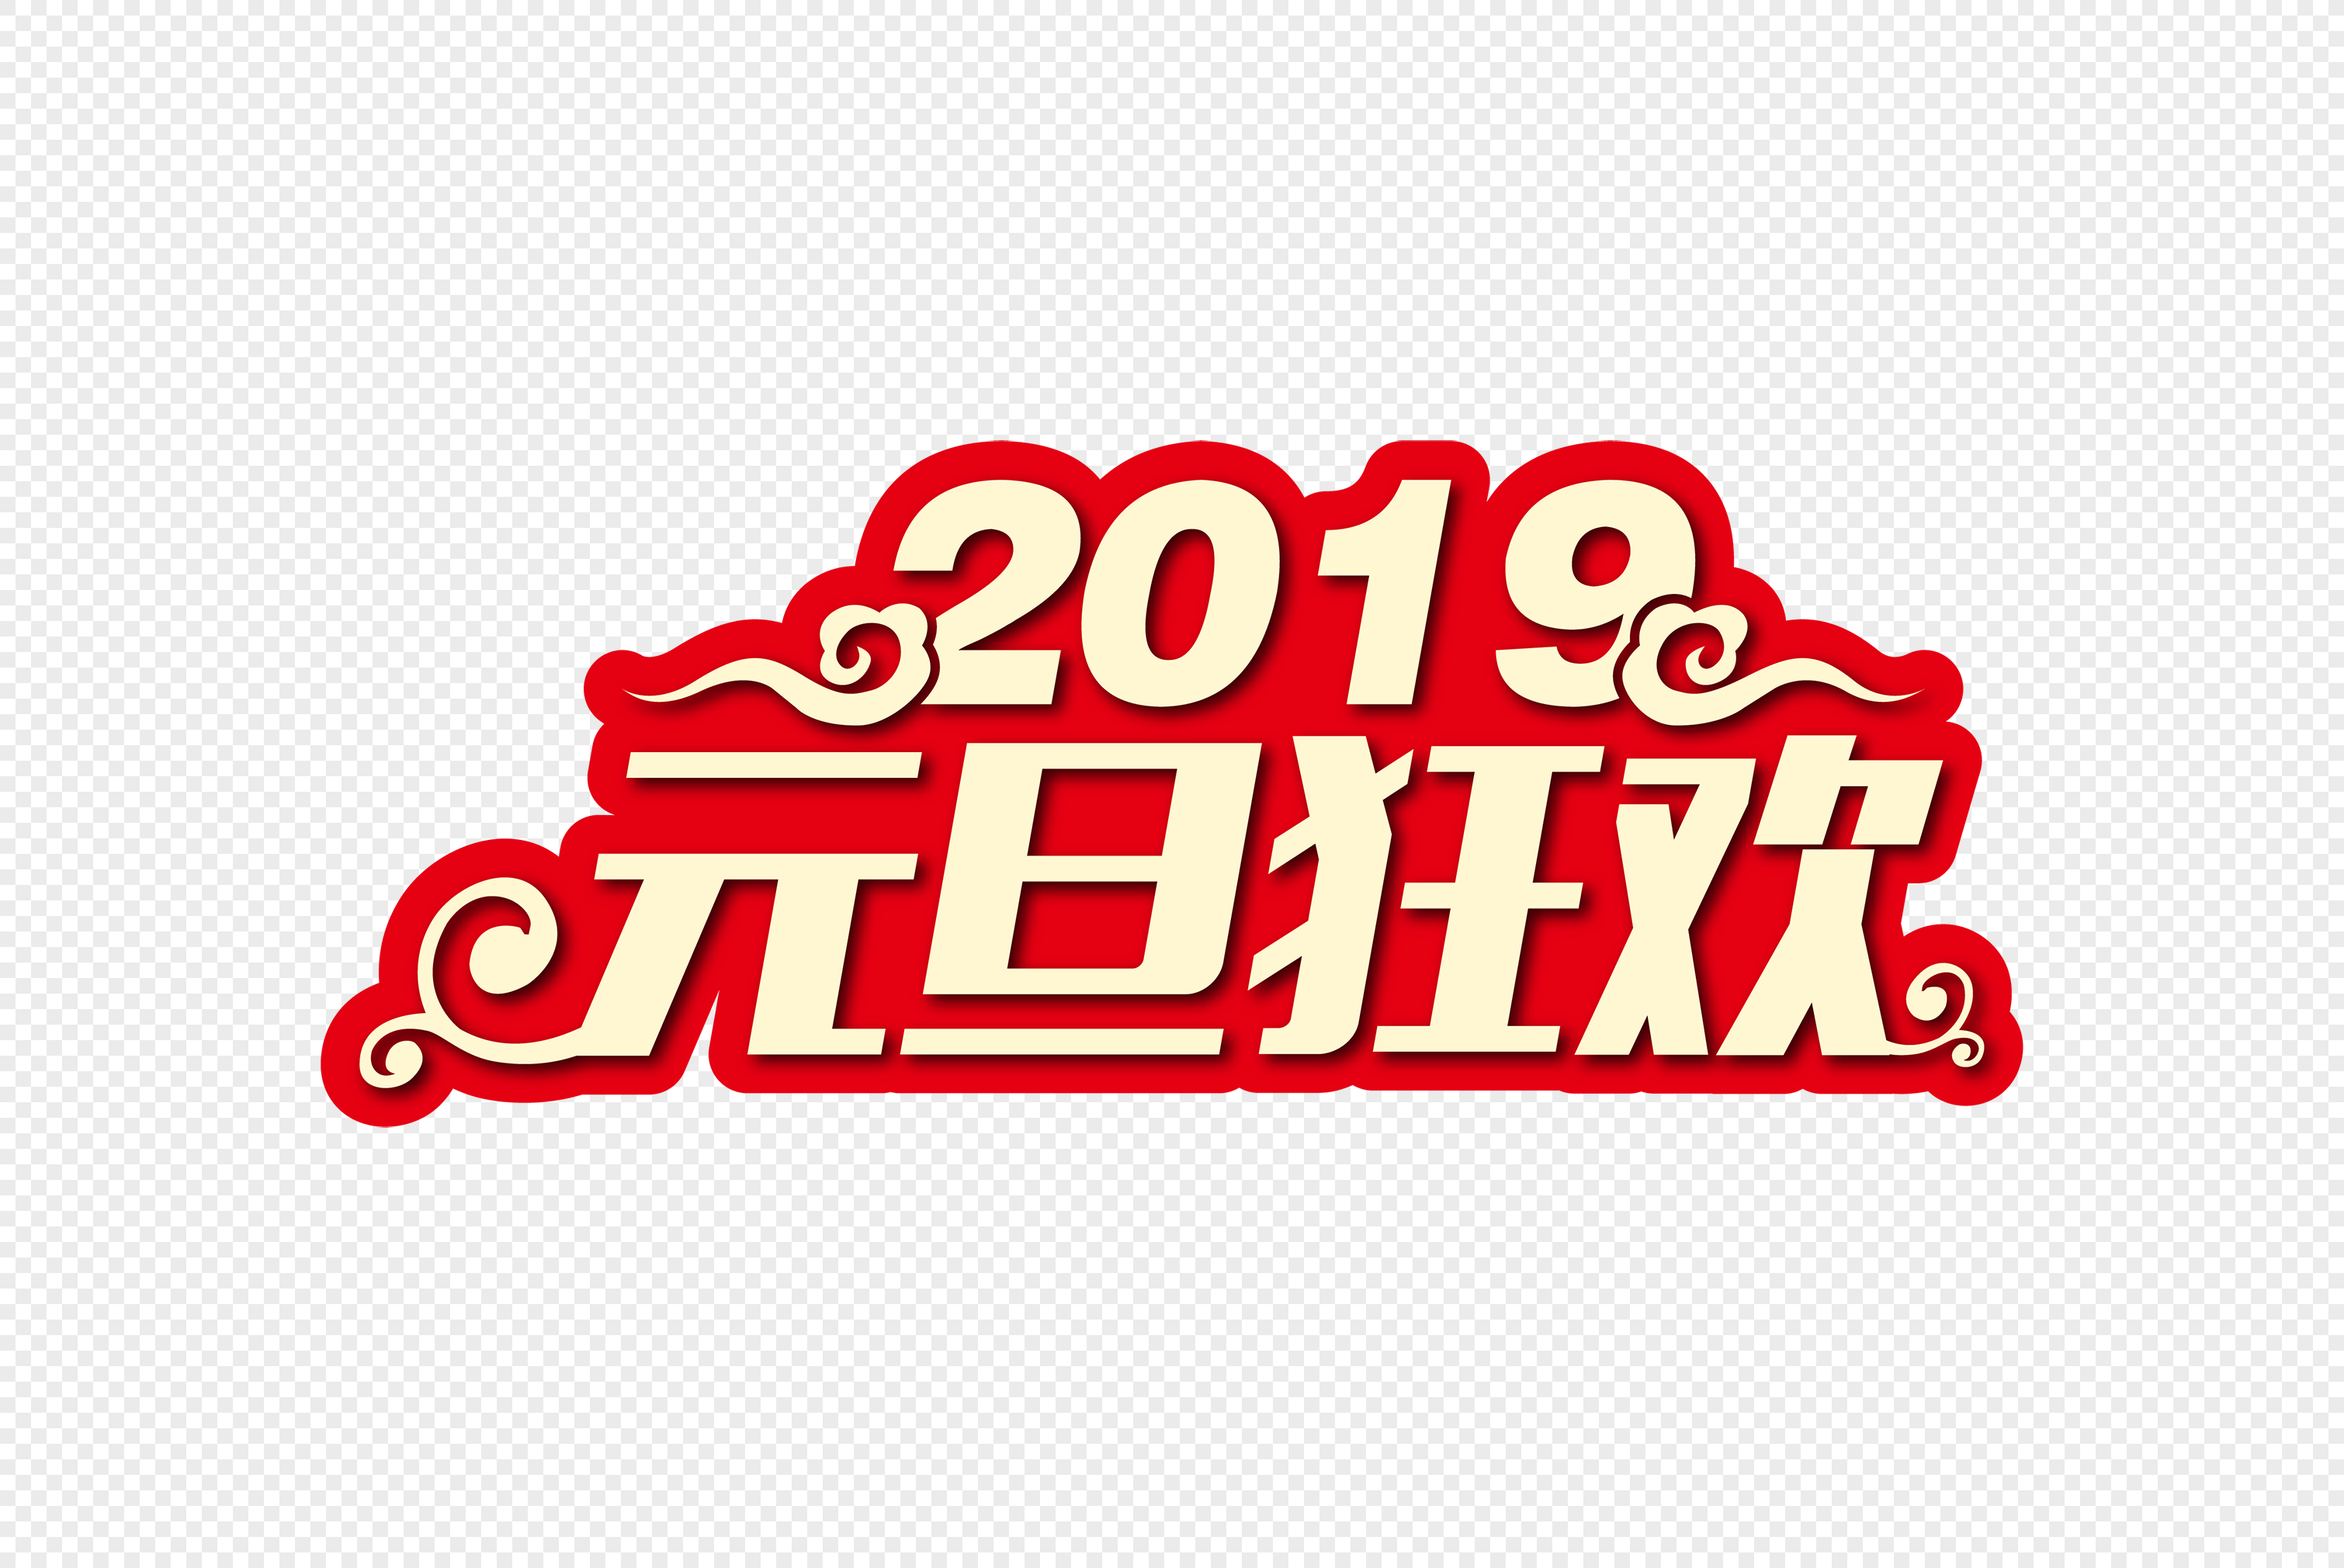 high end celebrations 2019 new year carnival fonts png image picture